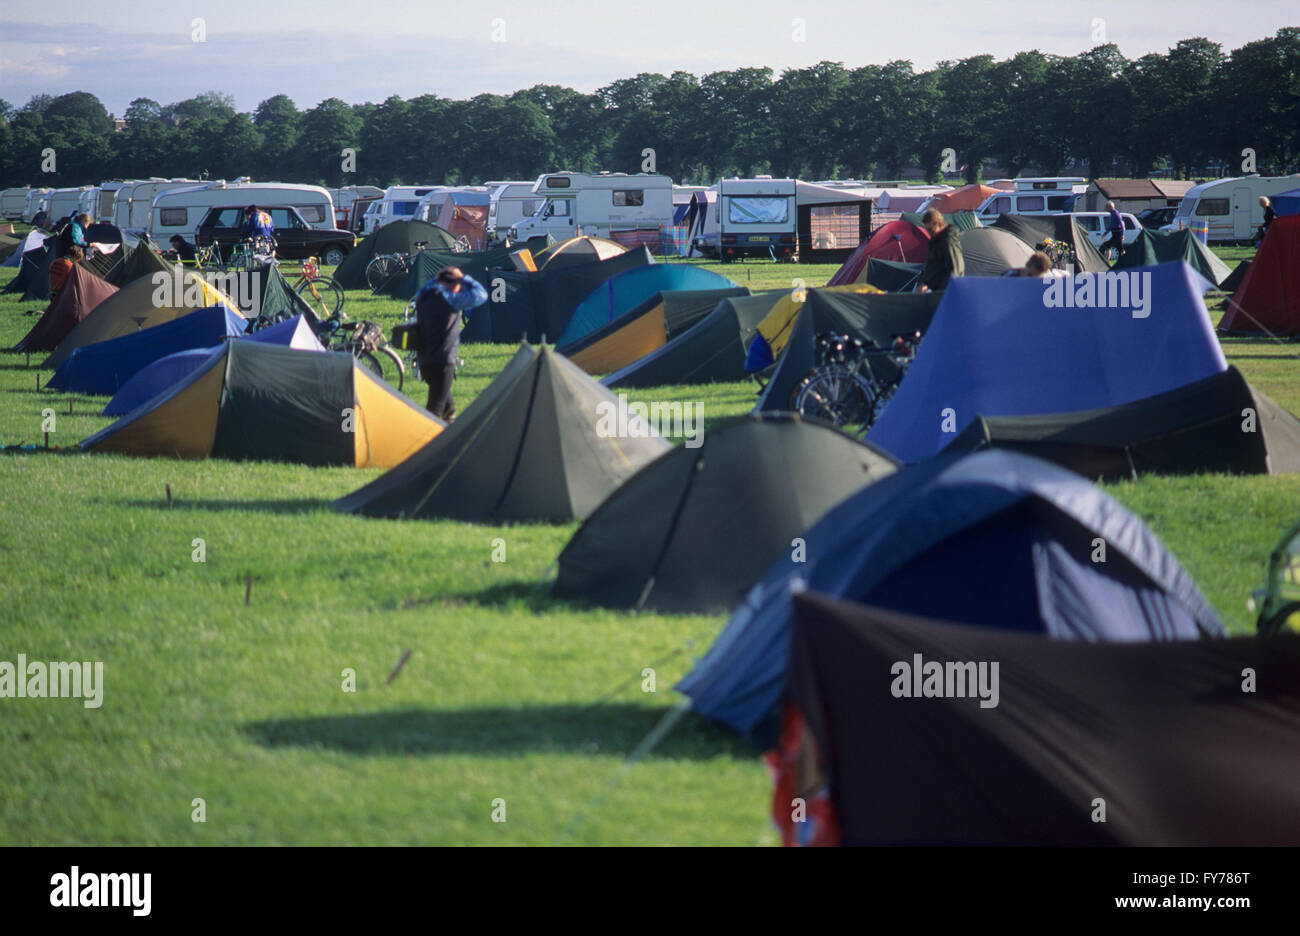 Tents and camper vans at a campsite. - Stock Image